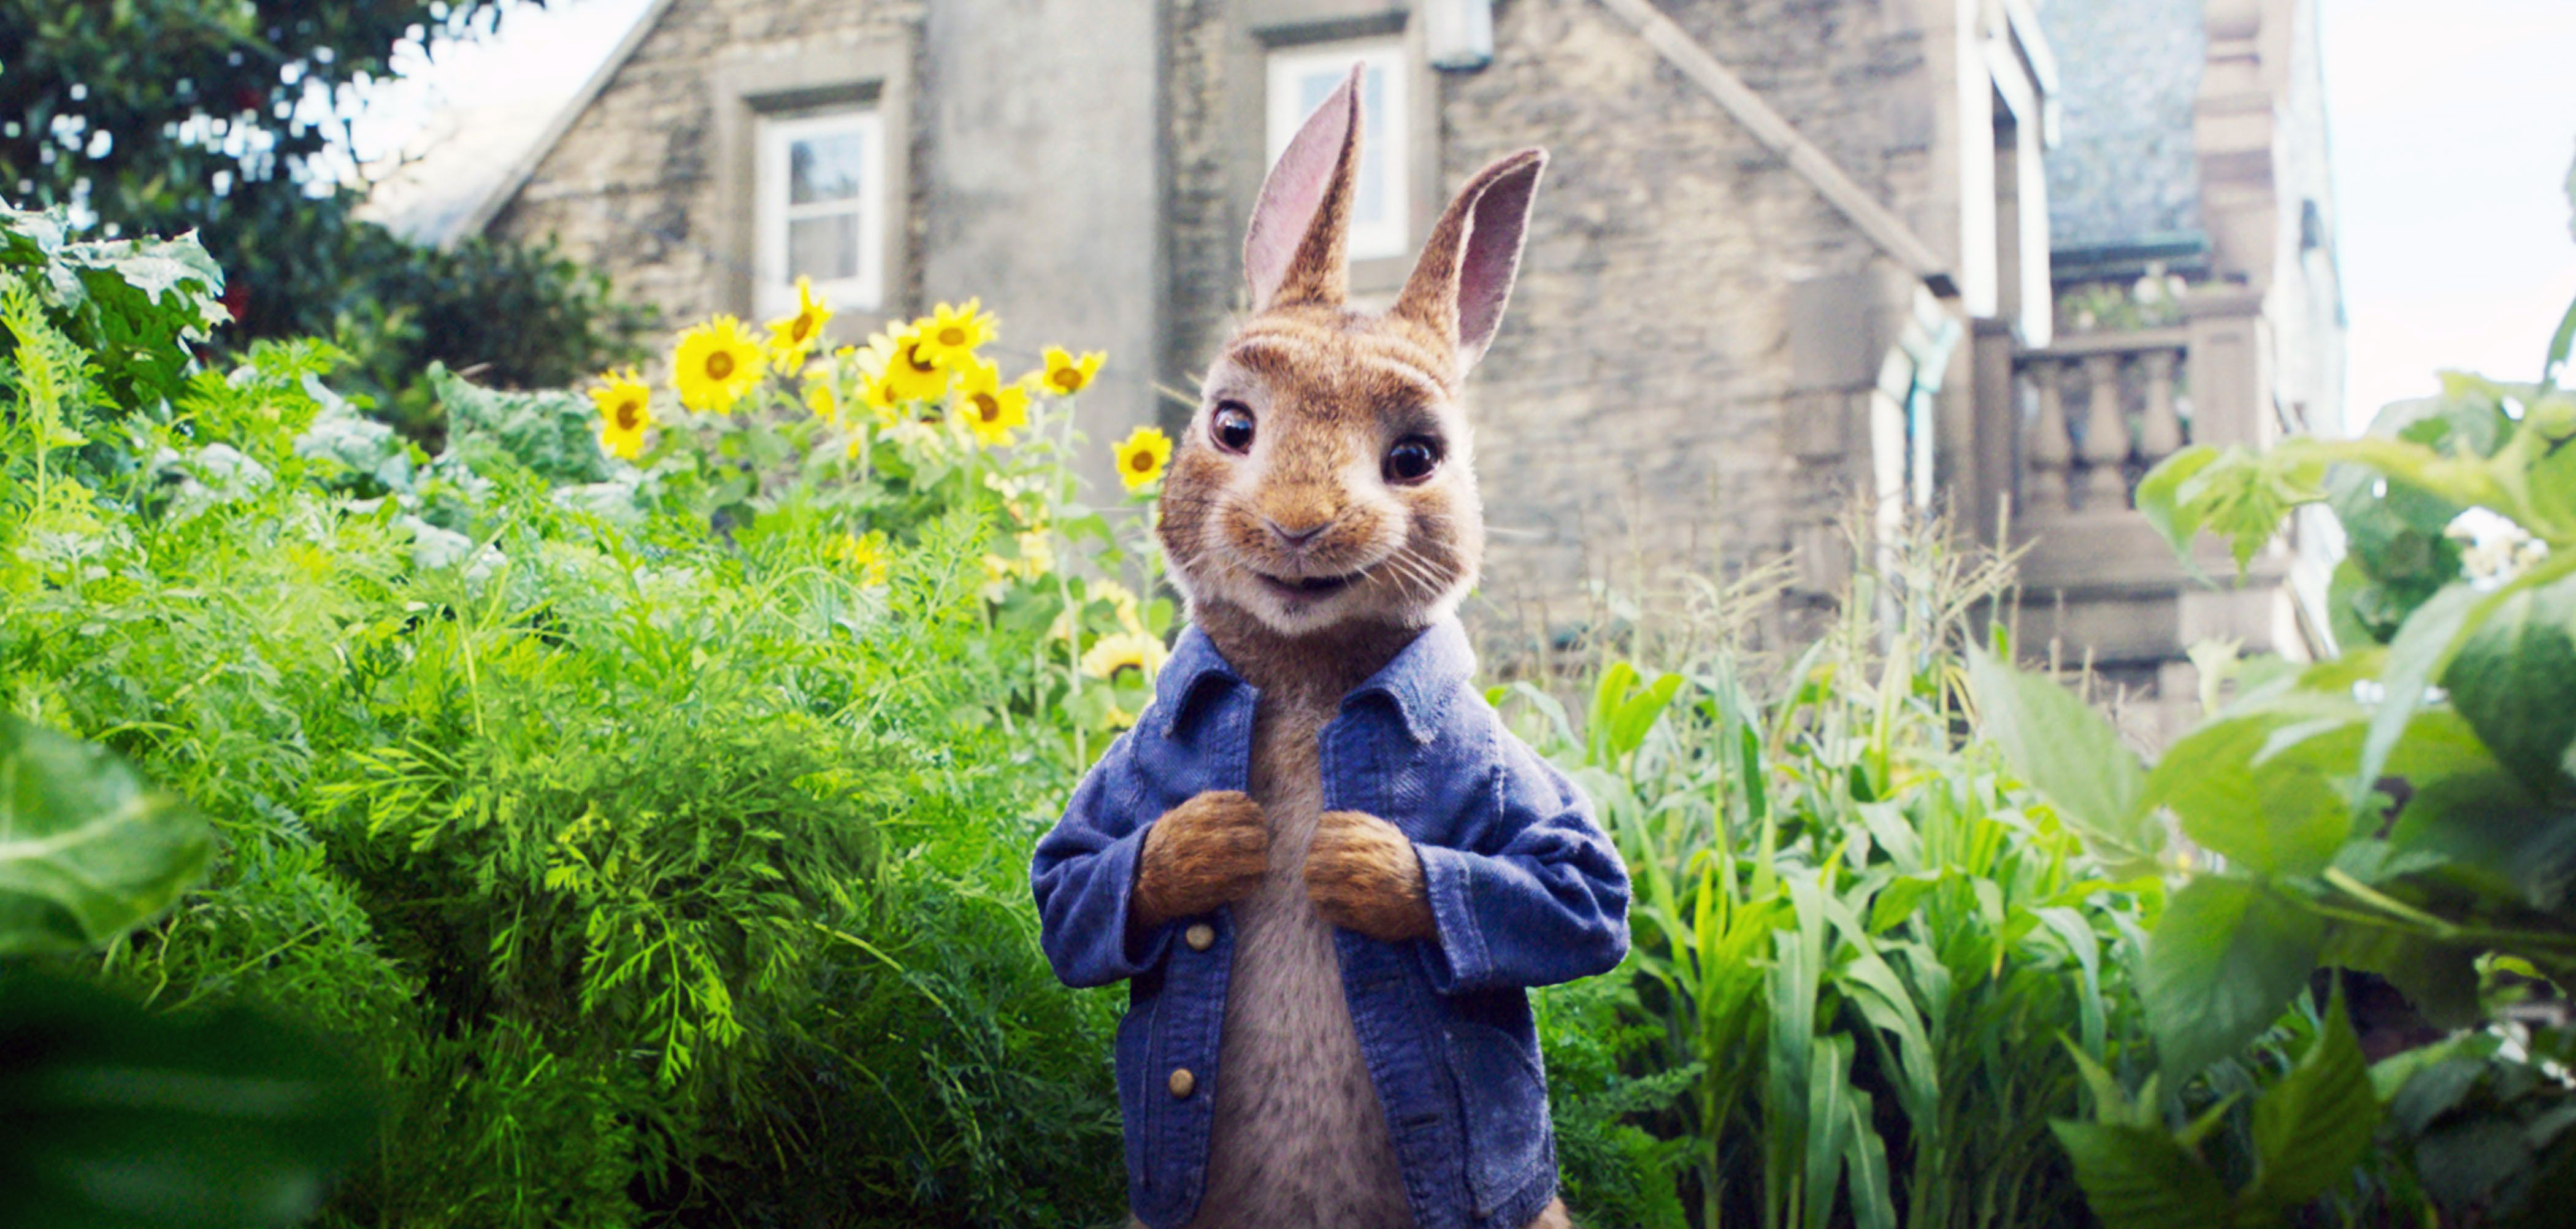 7 Best Easter Movies on Netflix 2019 - Top Easter Films to